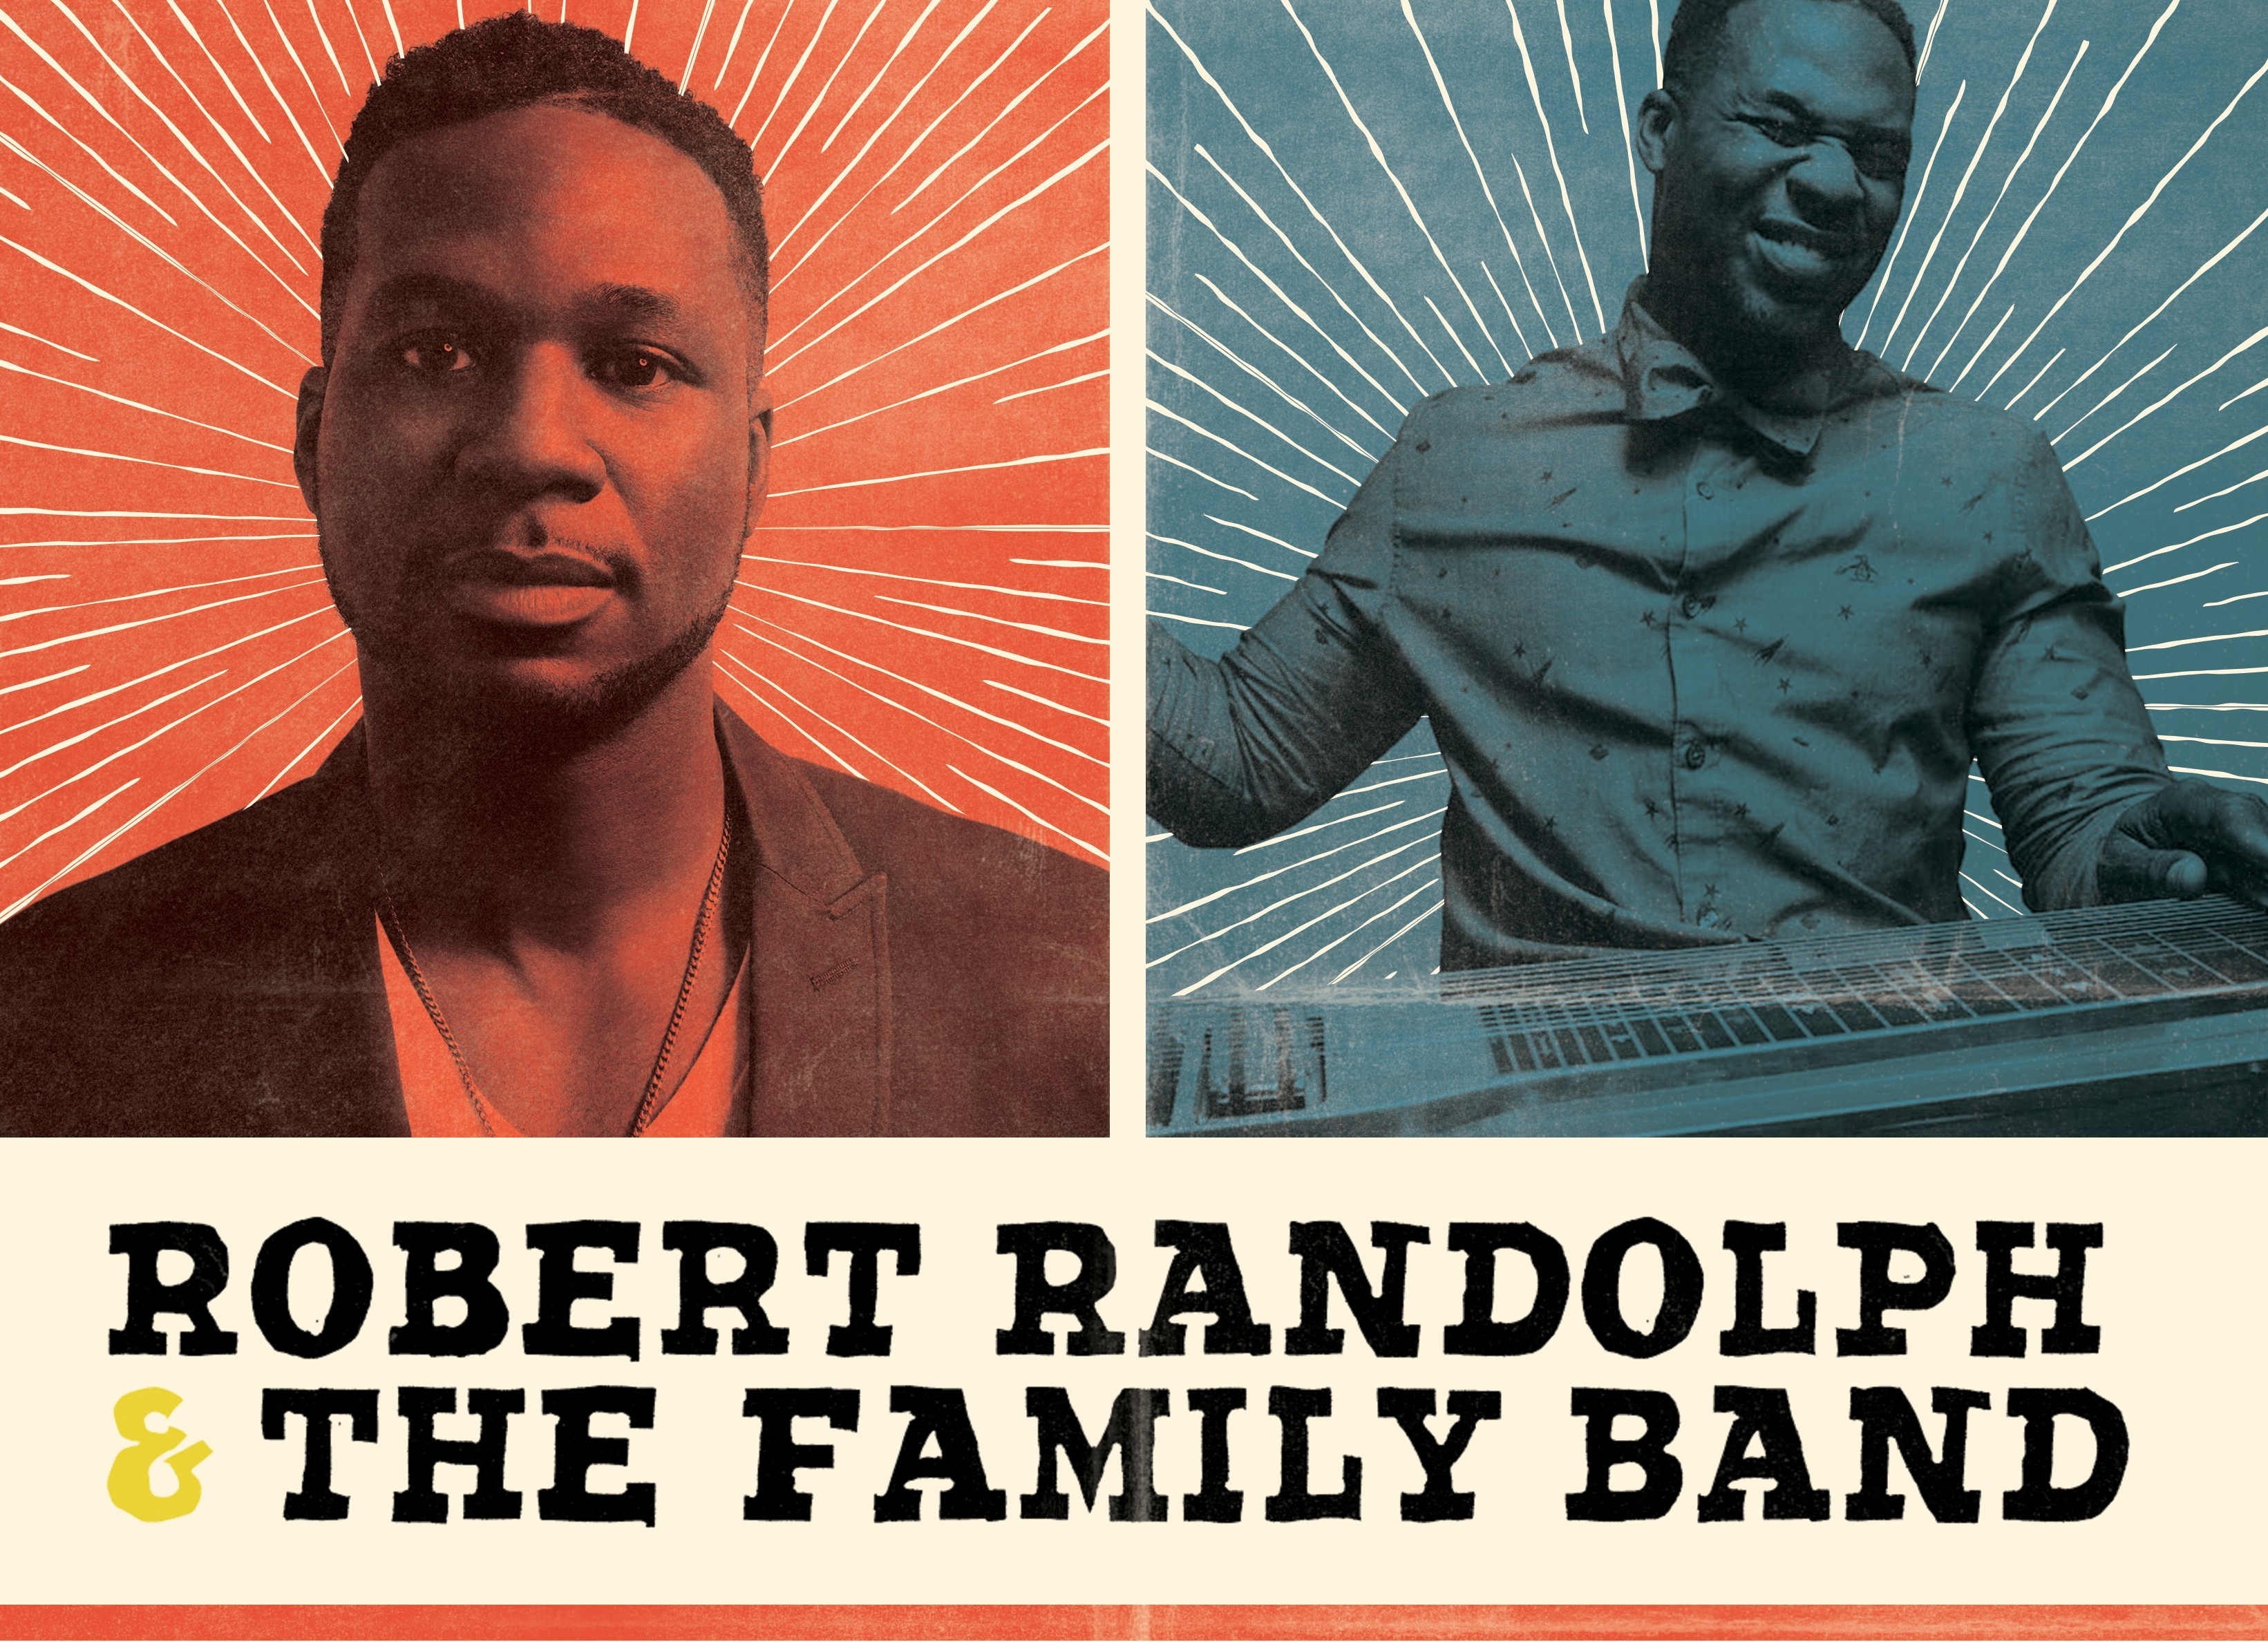 Robert Randolph & the Family Band Announce Summer Tour Dates